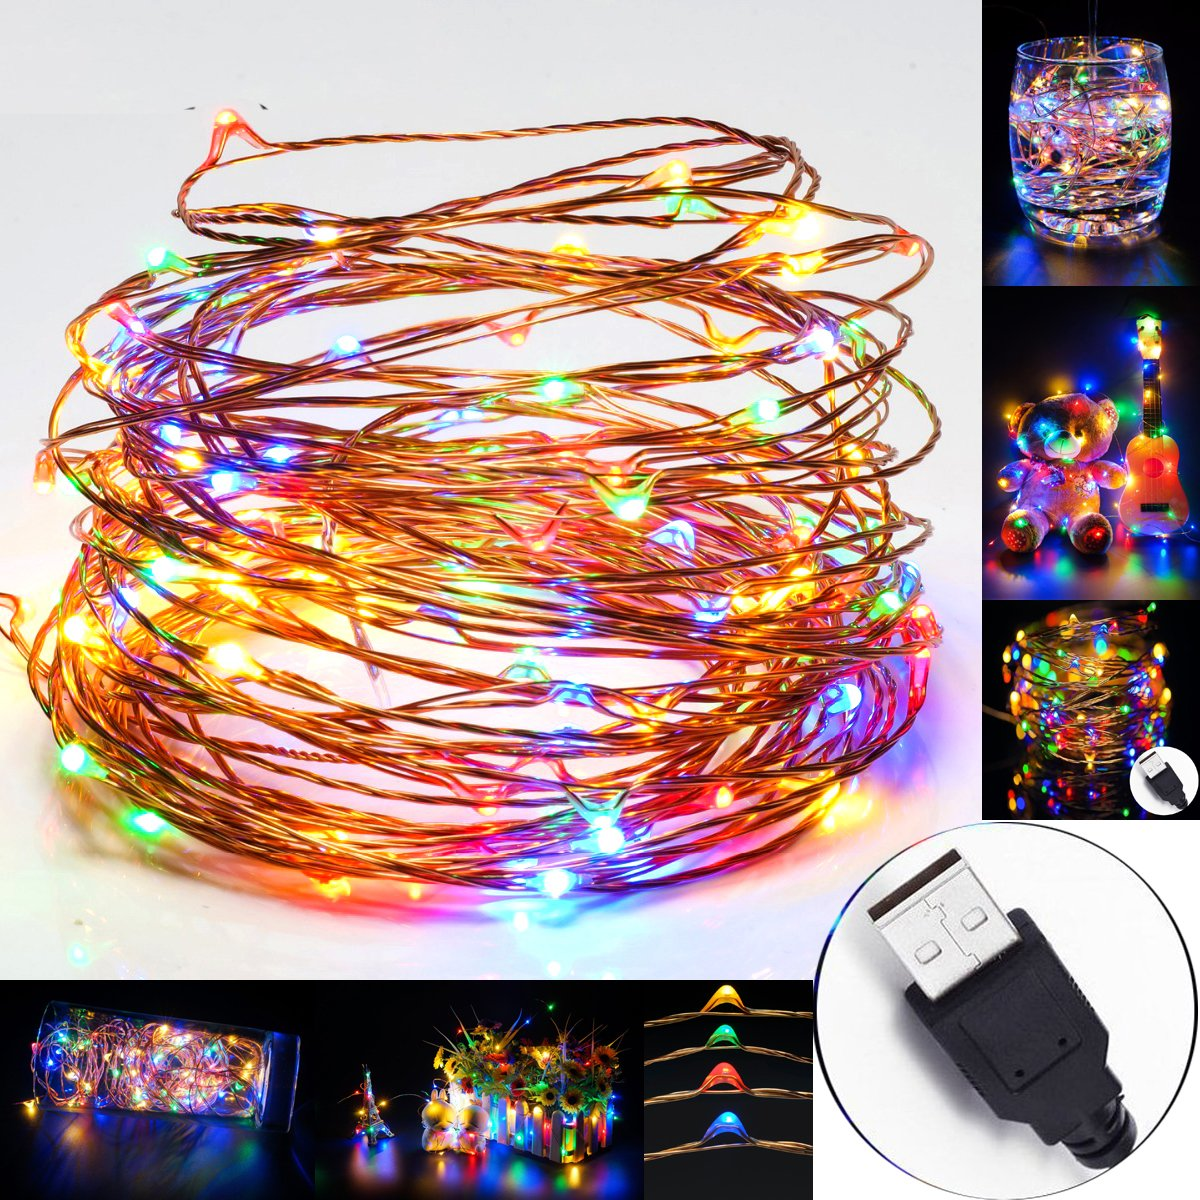 UrChoiceLtd® RGB 10M 33ft 100 LEDs USB Christmas Dimmable Indoor & Outdoor LED Strip Fairy Lighting Copper Wire String Lights Flexible Starry Waterproof Perfect for Xmas / New Year / Party (RGB) [Energy Class A+]